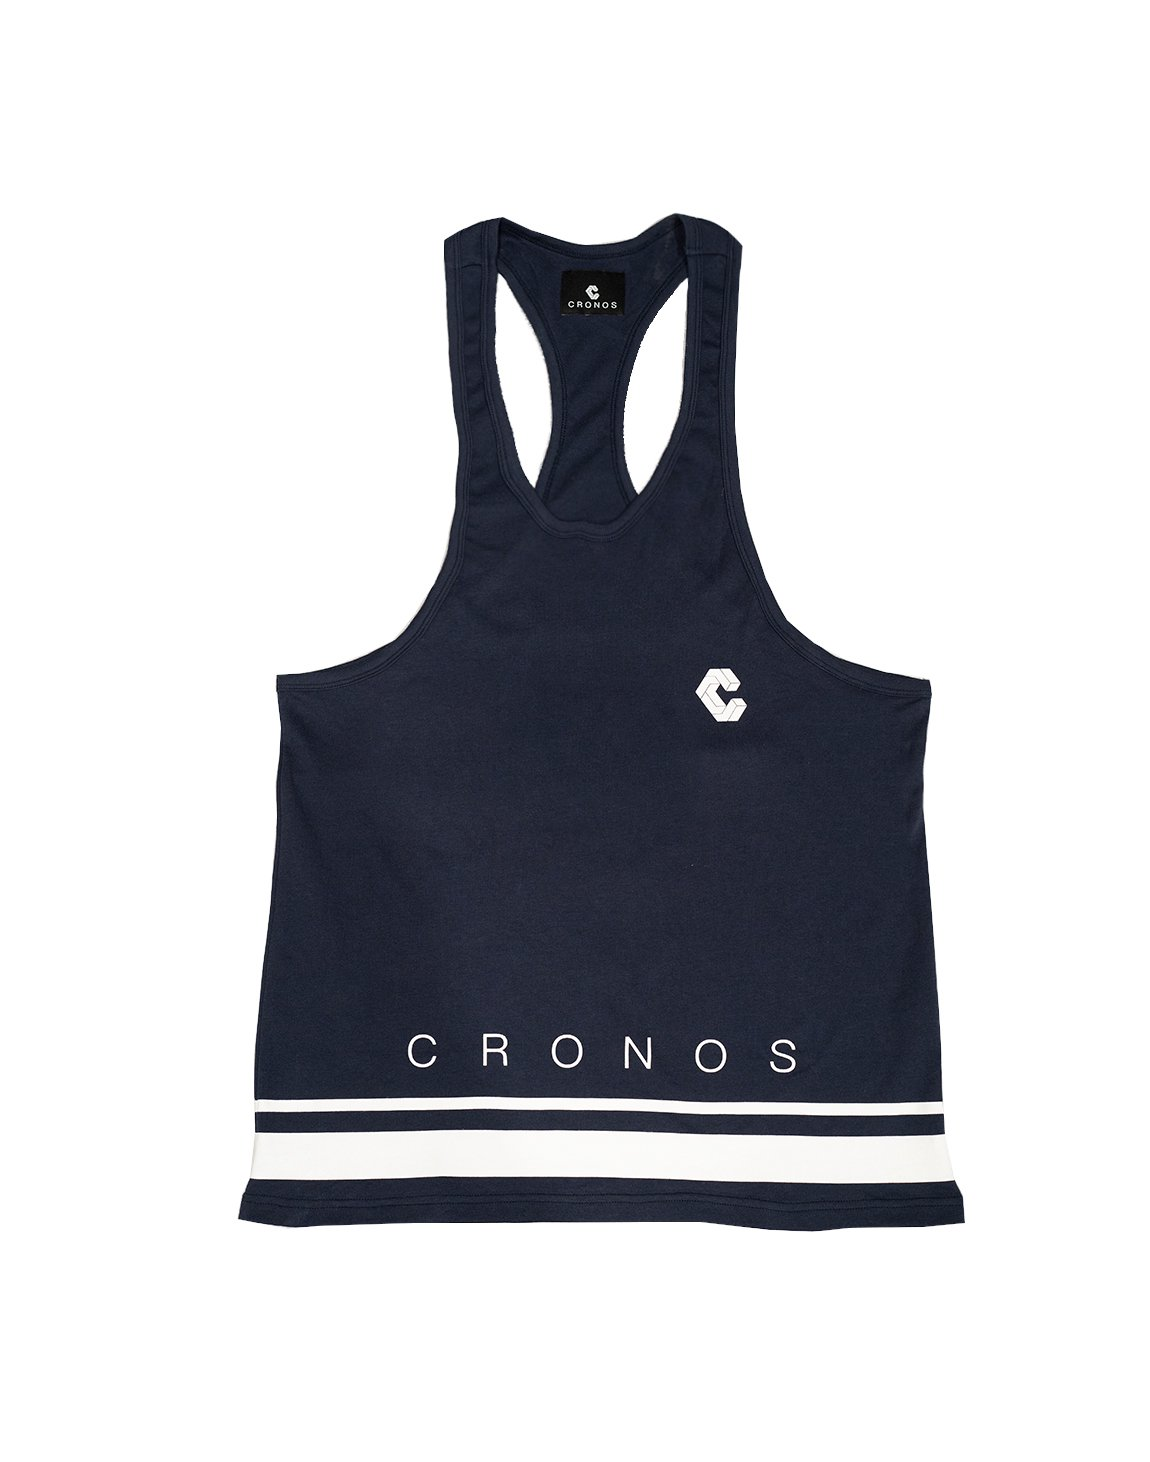 <img class='new_mark_img1' src='https://img.shop-pro.jp/img/new/icons1.gif' style='border:none;display:inline;margin:0px;padding:0px;width:auto;' />CRONOS HEM TWO LINE TANK TOP 【NAVY】